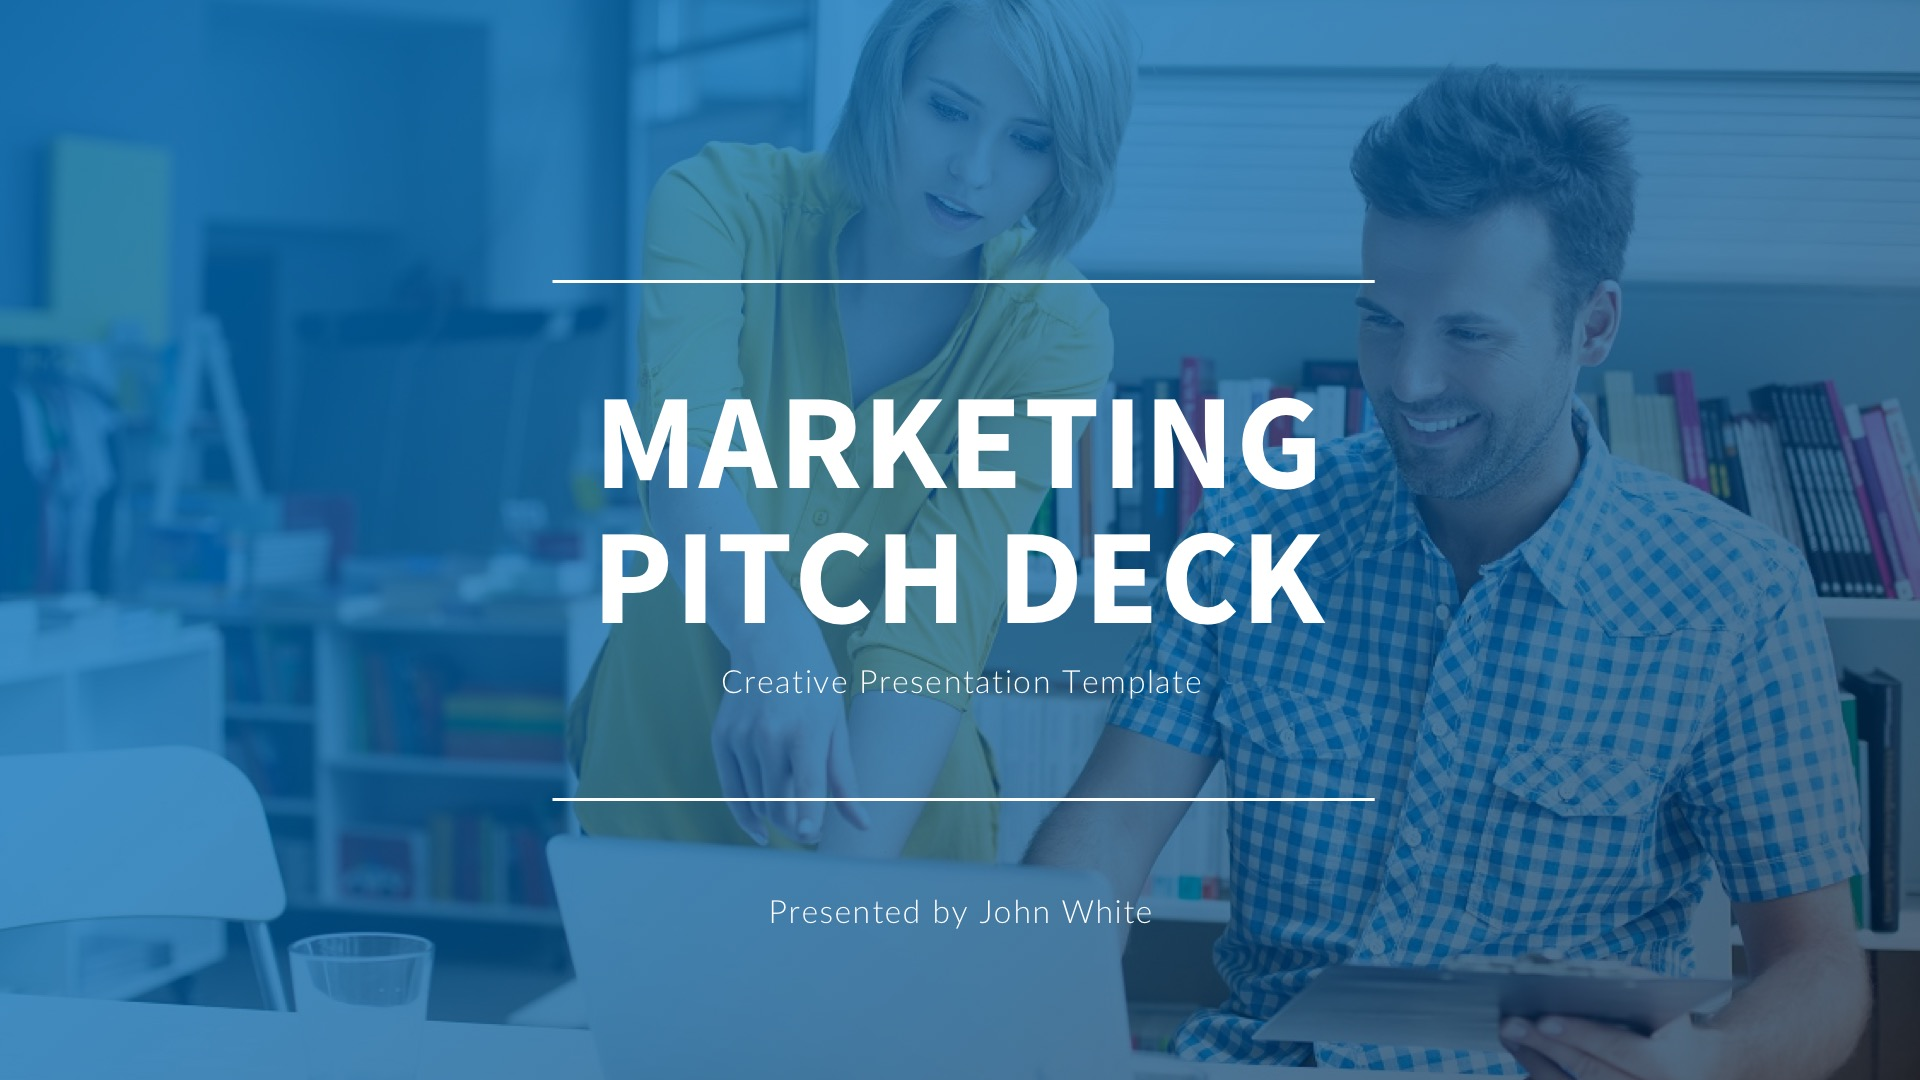 marketing pitch deck powerpoint template by slidefusion